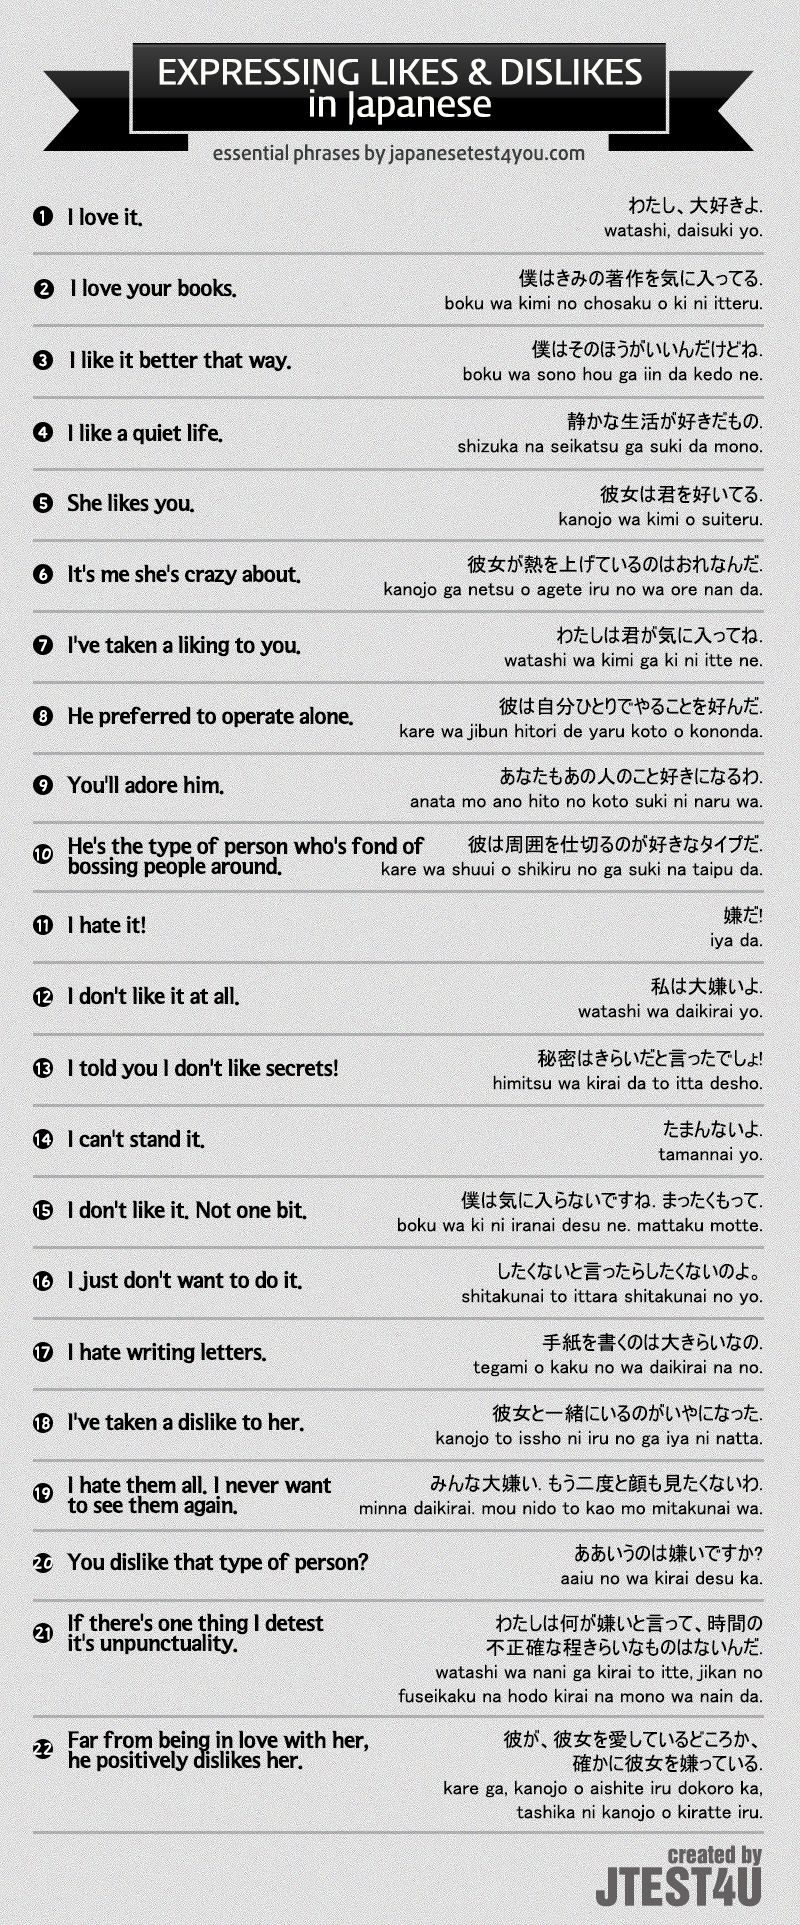 Infographic: how to express likes and dislikes in Japanese. http://japanesetest4you.com/infographic-how-to-express-likes-dislikes-in-japanese/